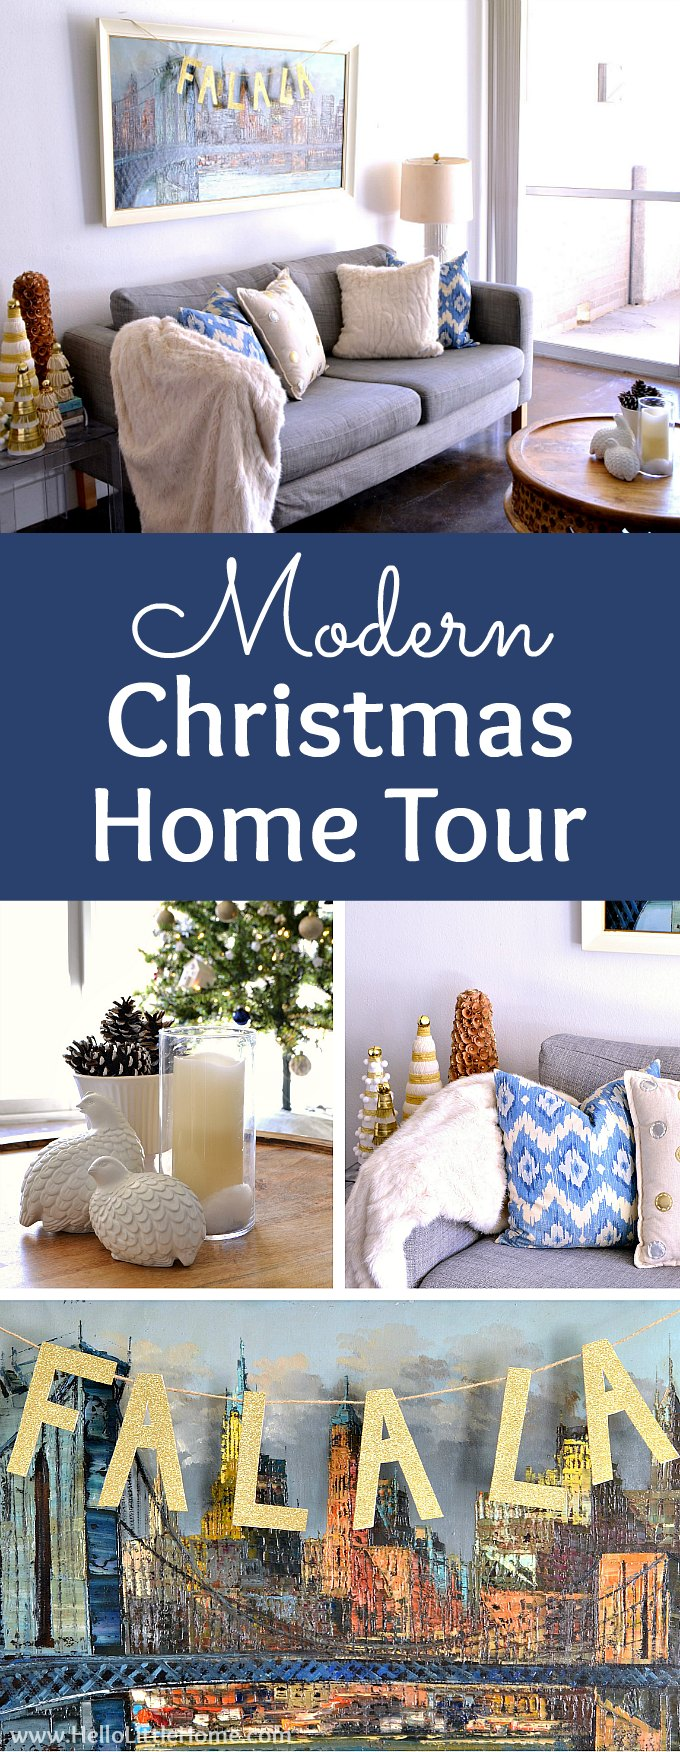 Modern Christmas Home Tour! This modern holiday home tour is full of fun, inspiration, and simple decorating ideas. Featuring a blue, gold, and white decorating theme, this tour has many easy Christmas ideas and crafts, including DIY Christmas ornaments, a sparkly gold garland, and a festive Xmas tree! These Modern Christmas decorating ideas are perfect for apartments and anyone on a budget. | Hello Little Home